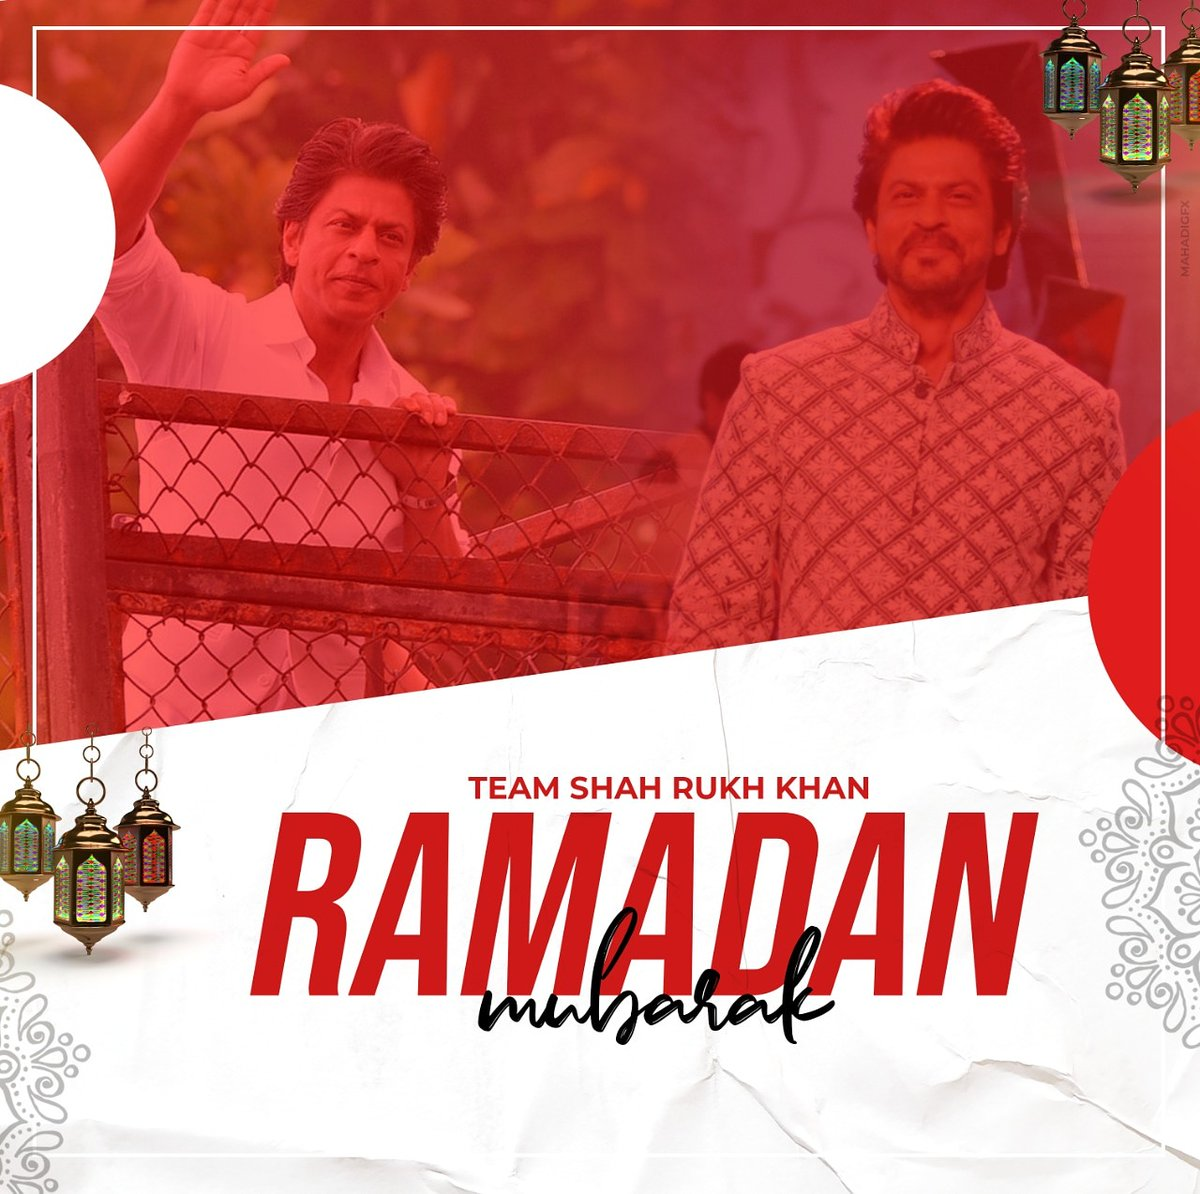 May this holy month bring happiness, prosperity and good health. 🌙  Wish you all Ramadan Mubarak 🤲  @iamsrk  #RamadanMubarak #ShahRukhKhan #TeamShahRukhKhan #Mahadigfx